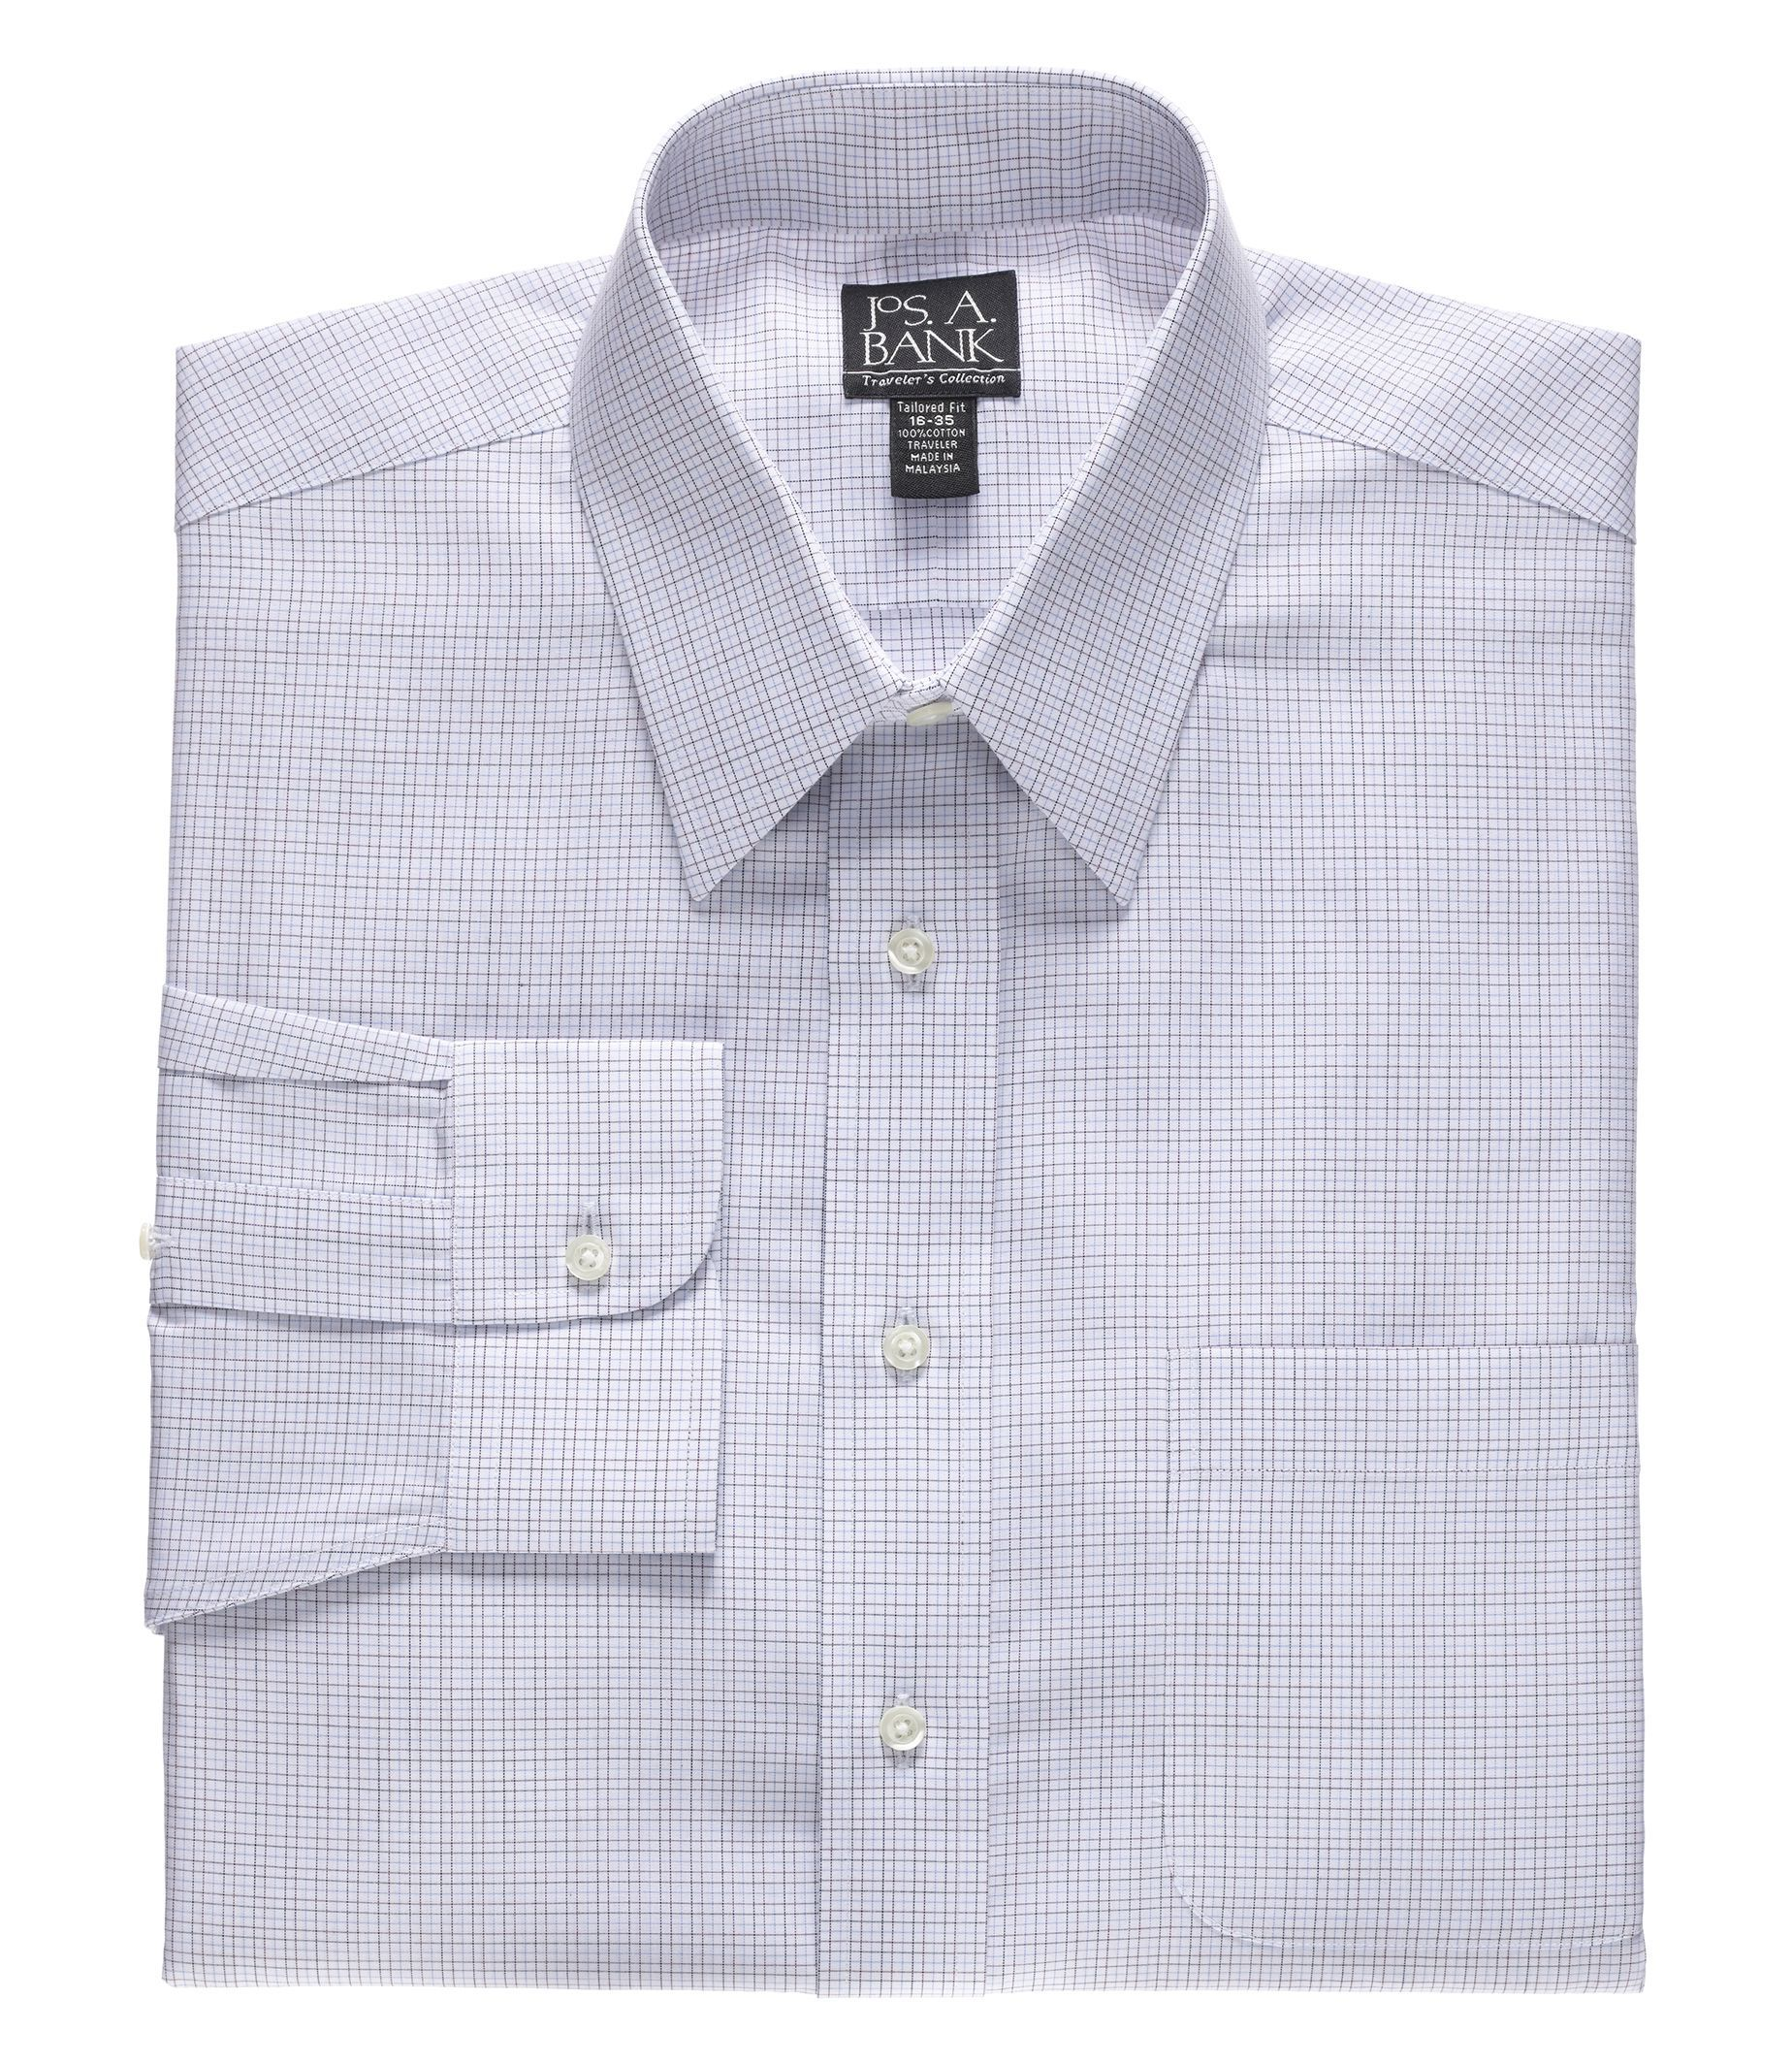 White dress shirt spread collar or point